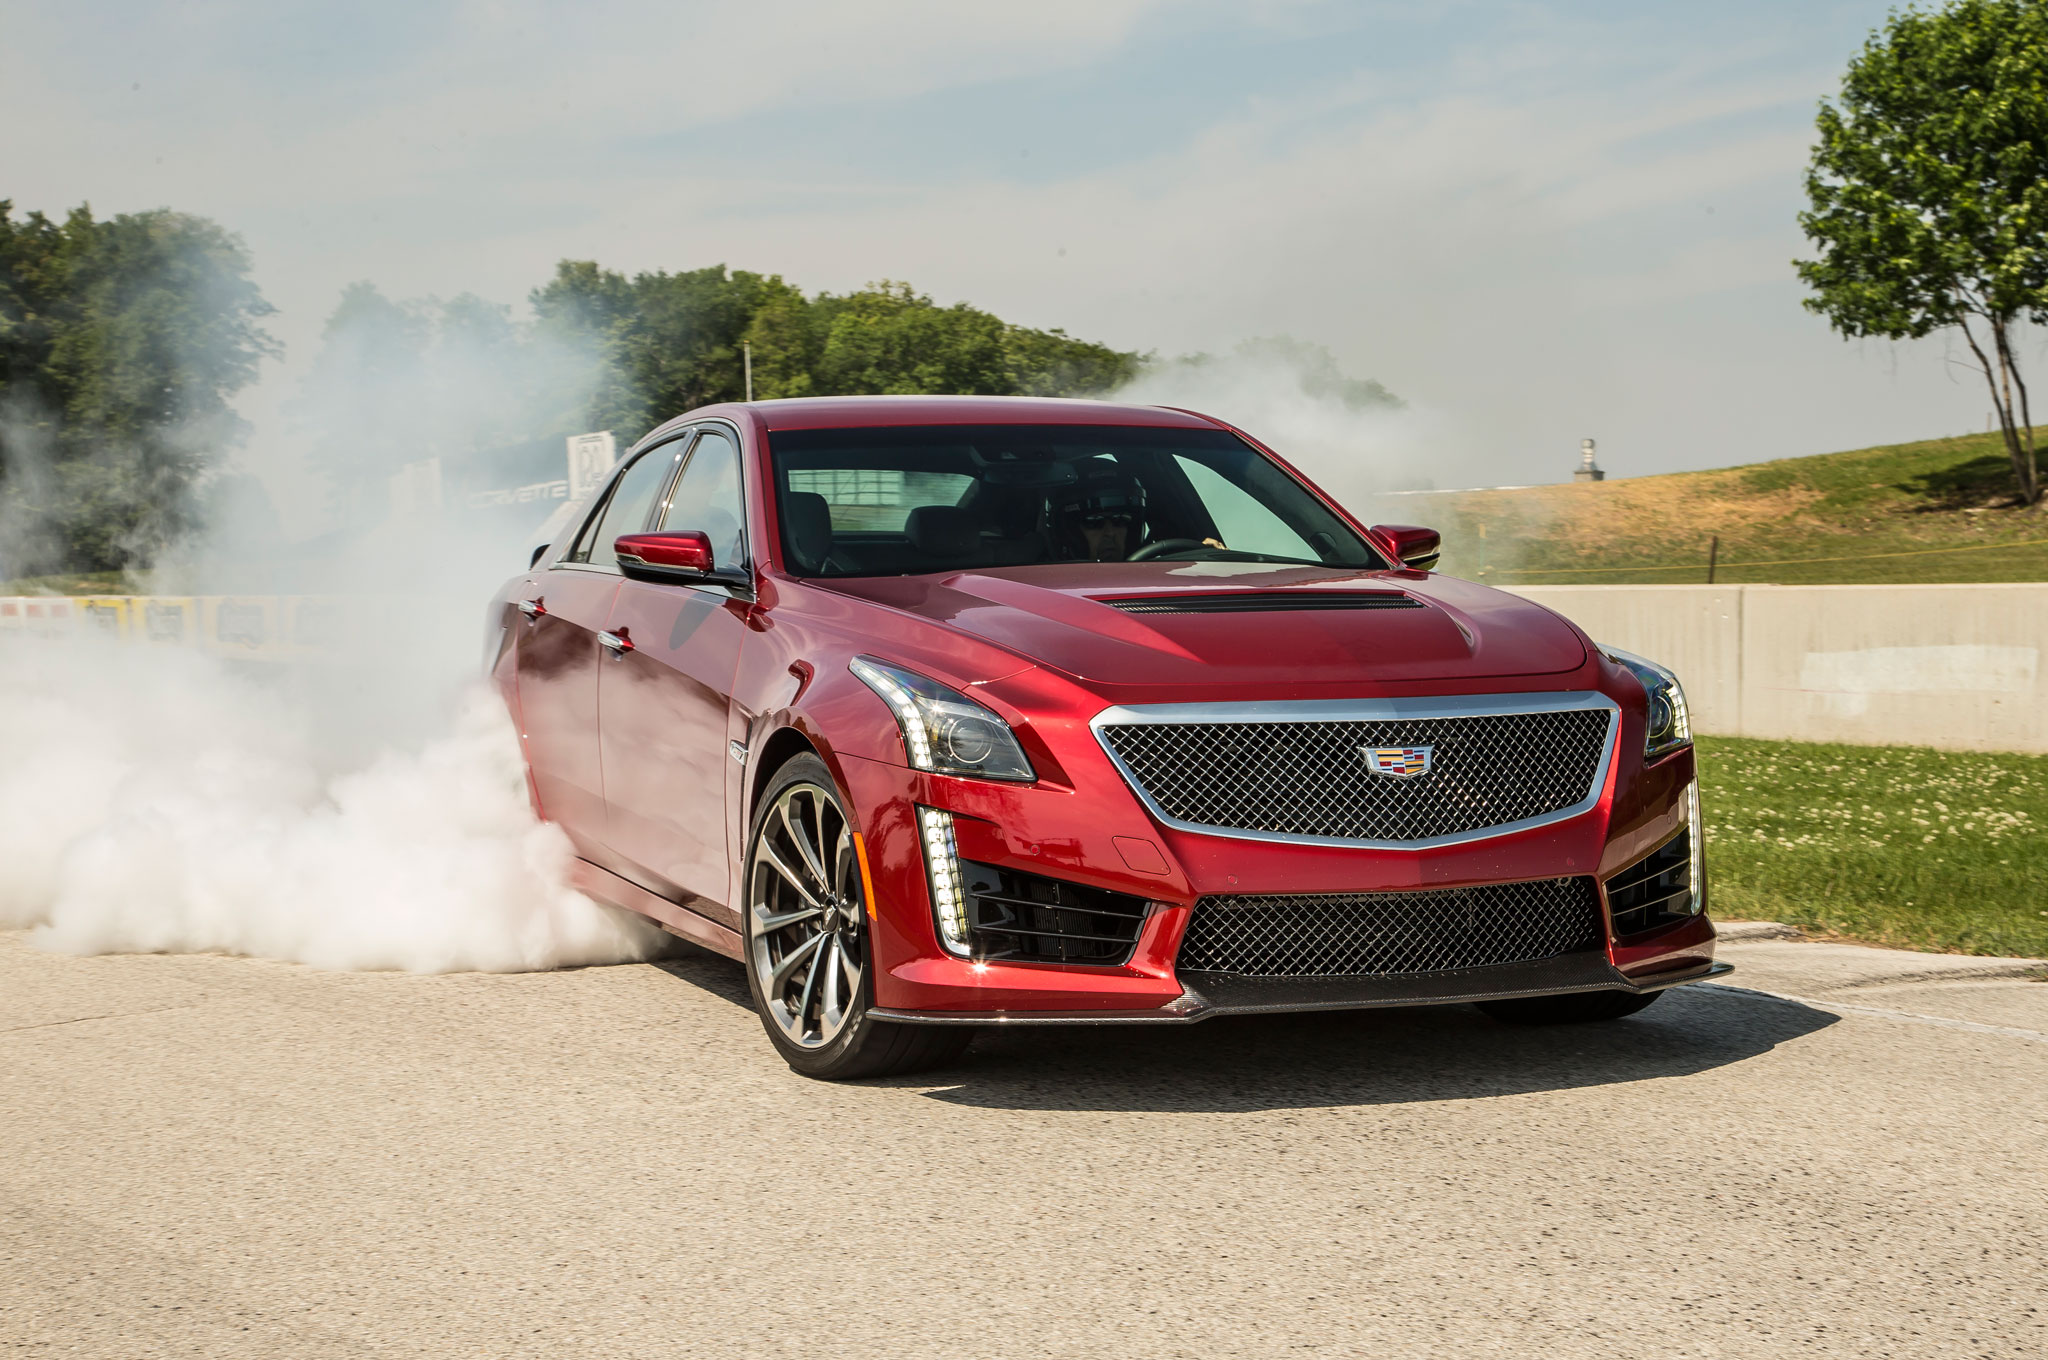 2016-Cadillac-CTS-V-Sedan-tire-burnout1 Cool Review About Cadilac 2016 with Amusing Photos Cars Review